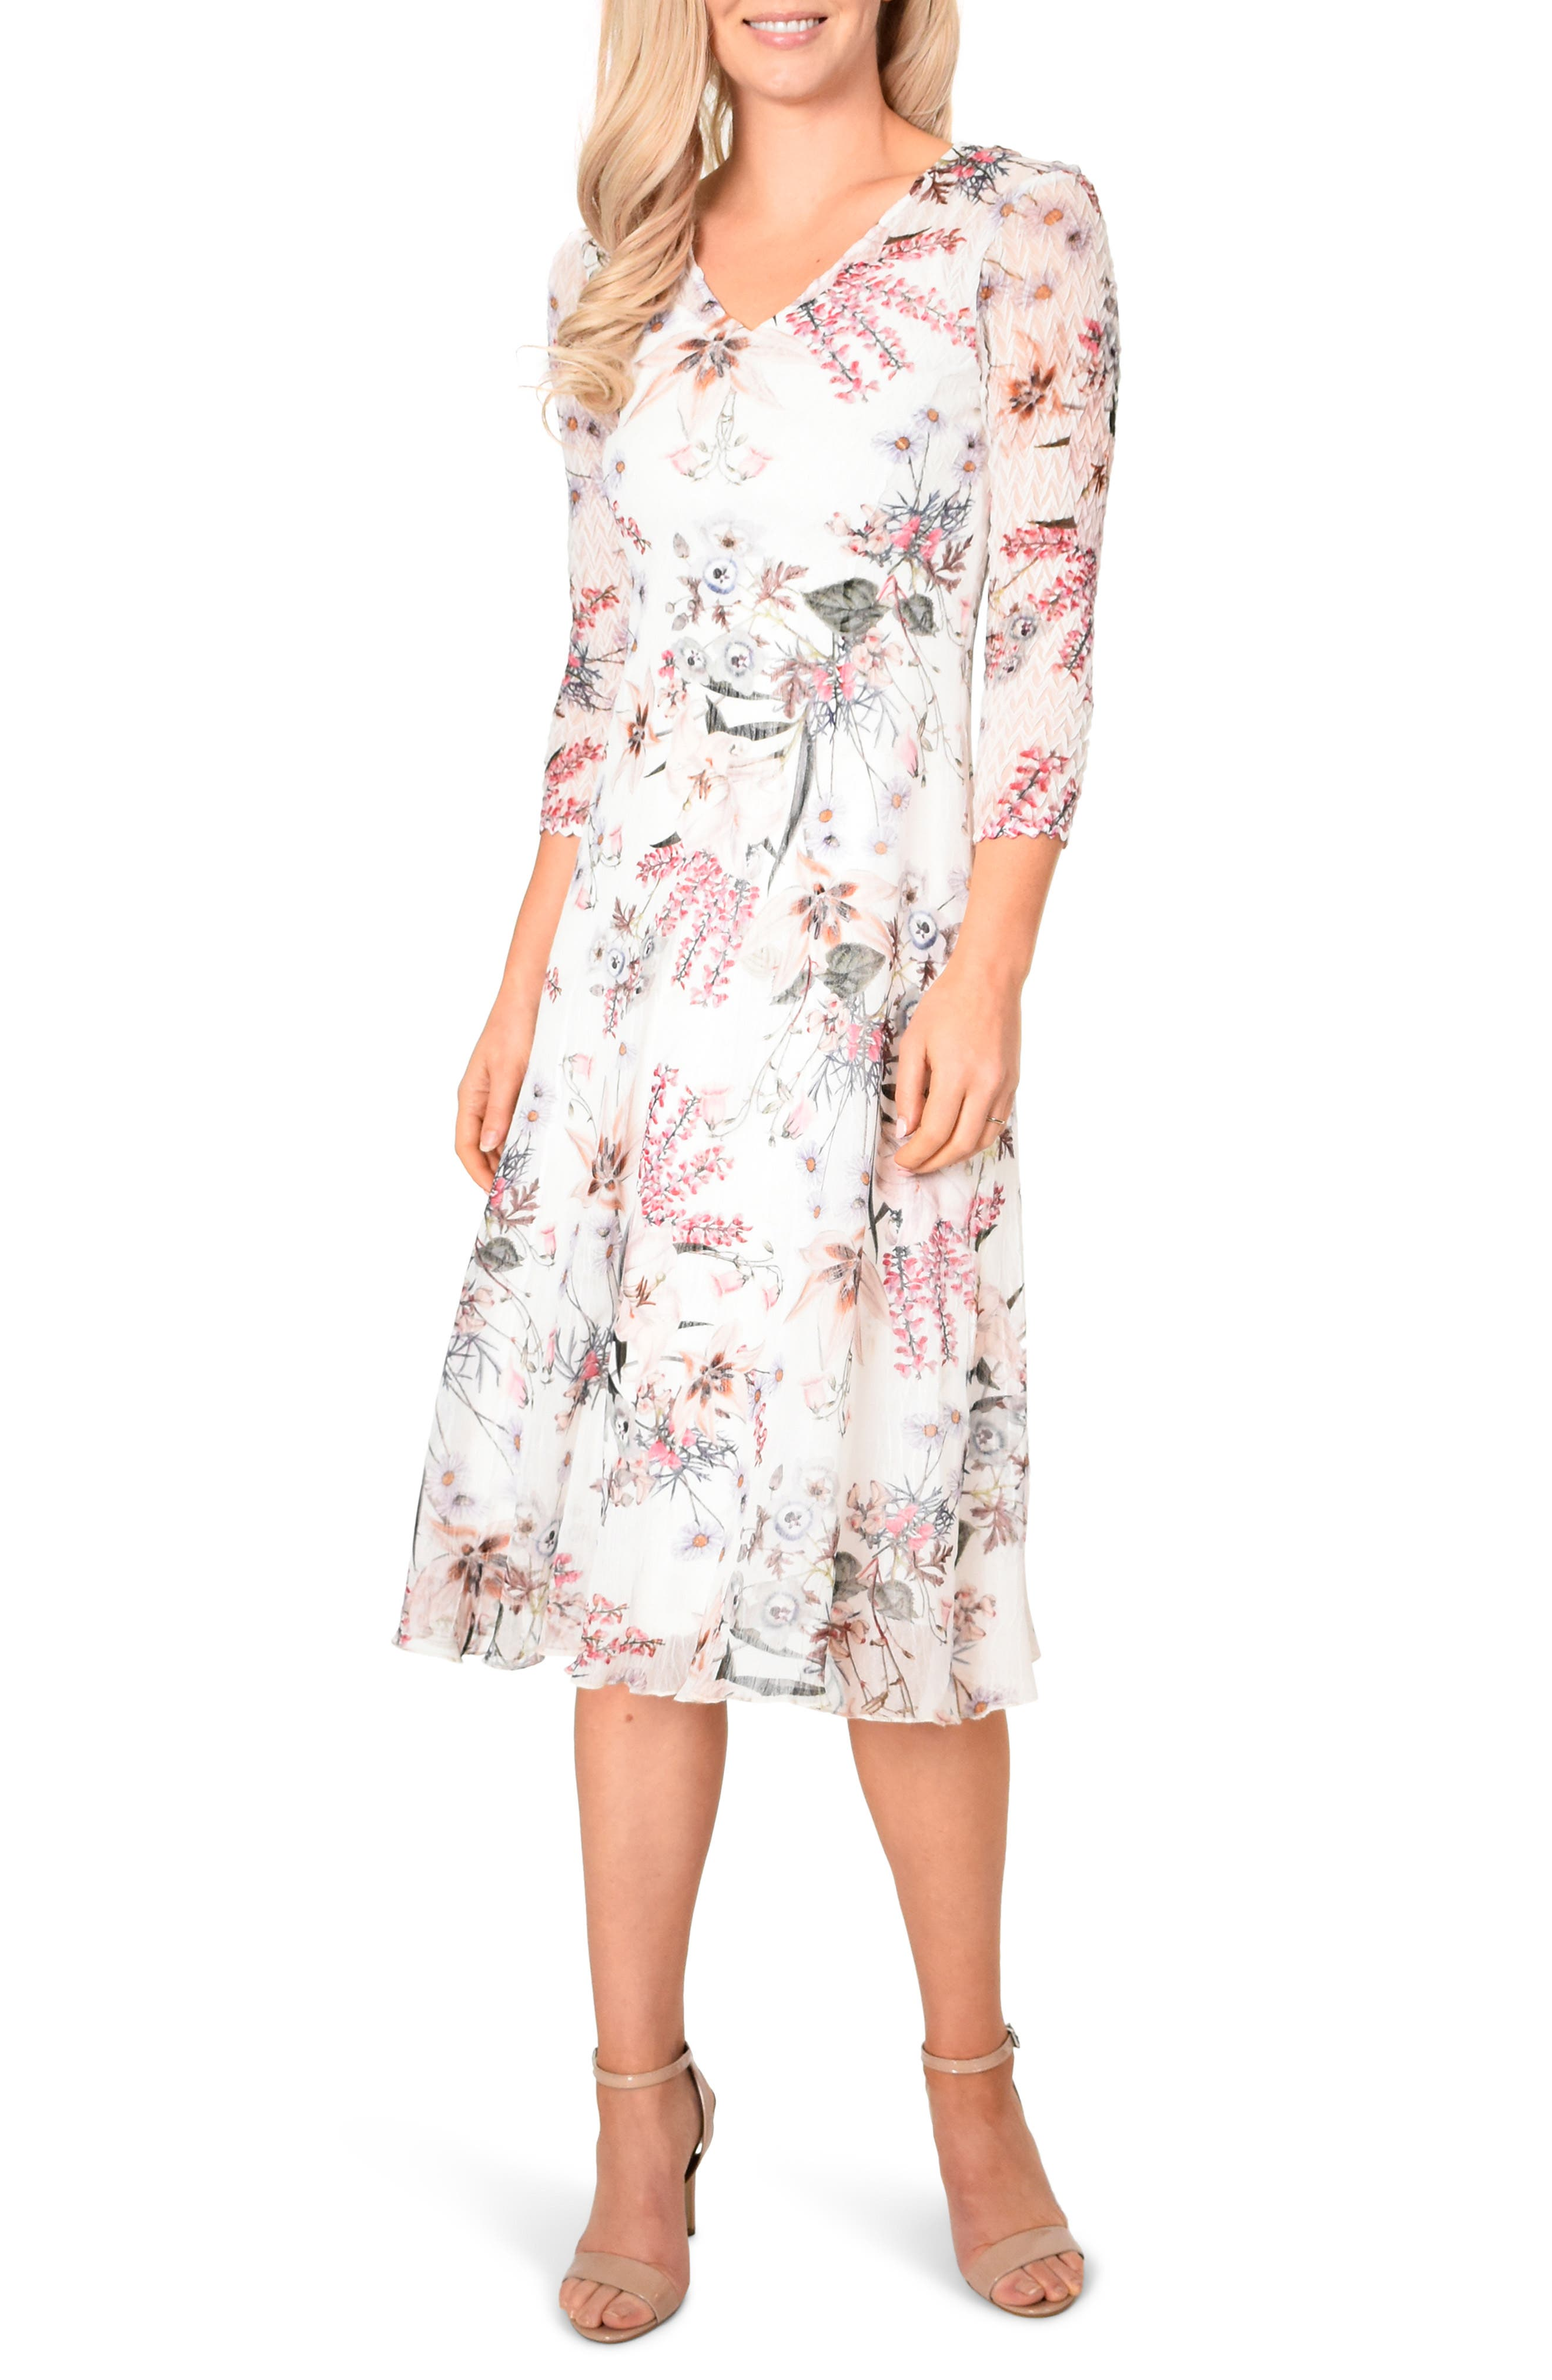 KOMAROV, Floral Chiffon MIdi Dress, Main thumbnail 1, color, SPRING ORCHARD